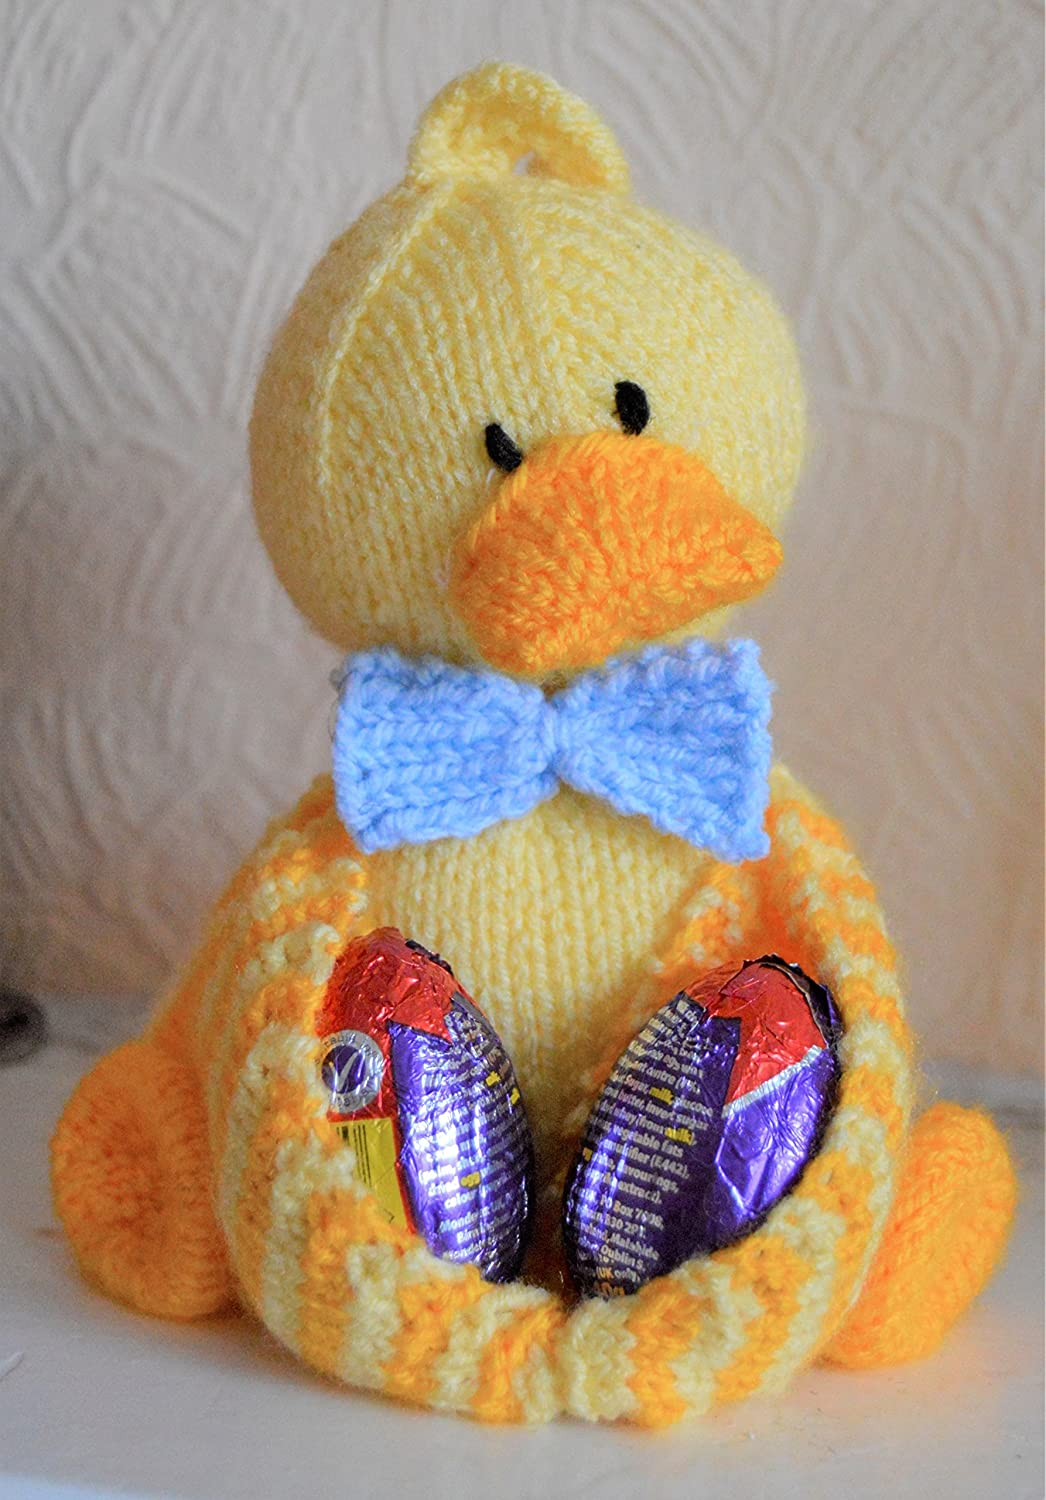 KNITTING PATTERN Ducky Egg Soft Toy Pattern from Knitting by Post ...